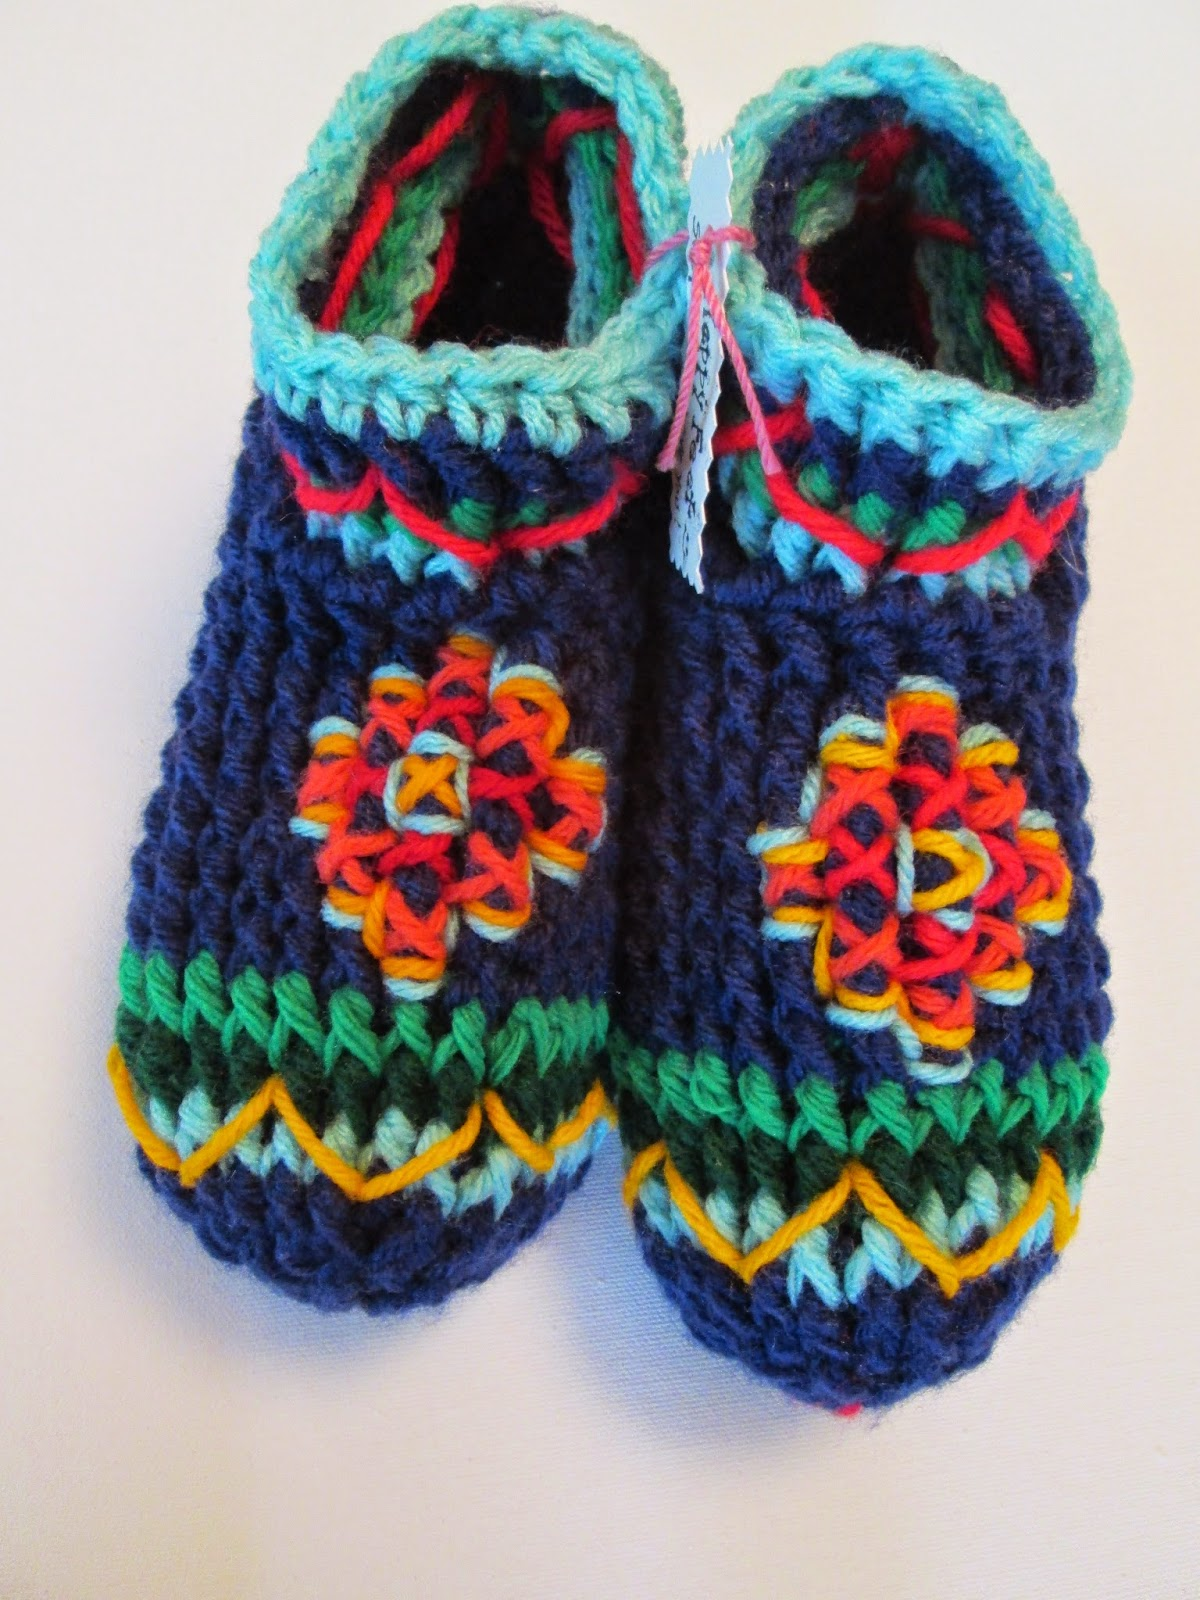 https://www.etsy.com/listing/221785671/pow-wows-crochet-moccasin-slippers